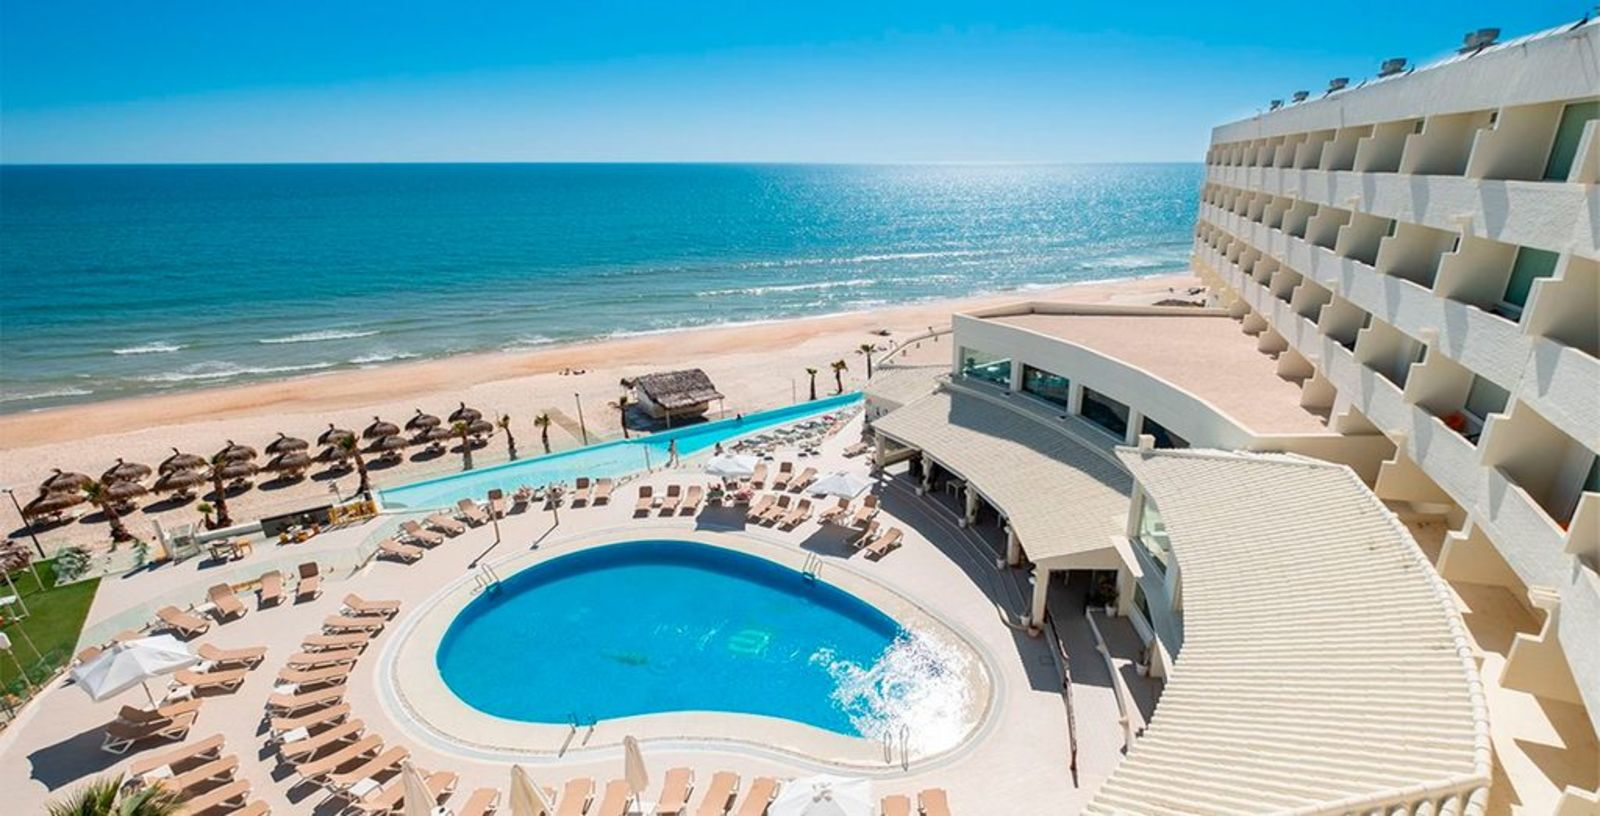 Impressions and Other Assets/On Hotels Oceanfront 4*